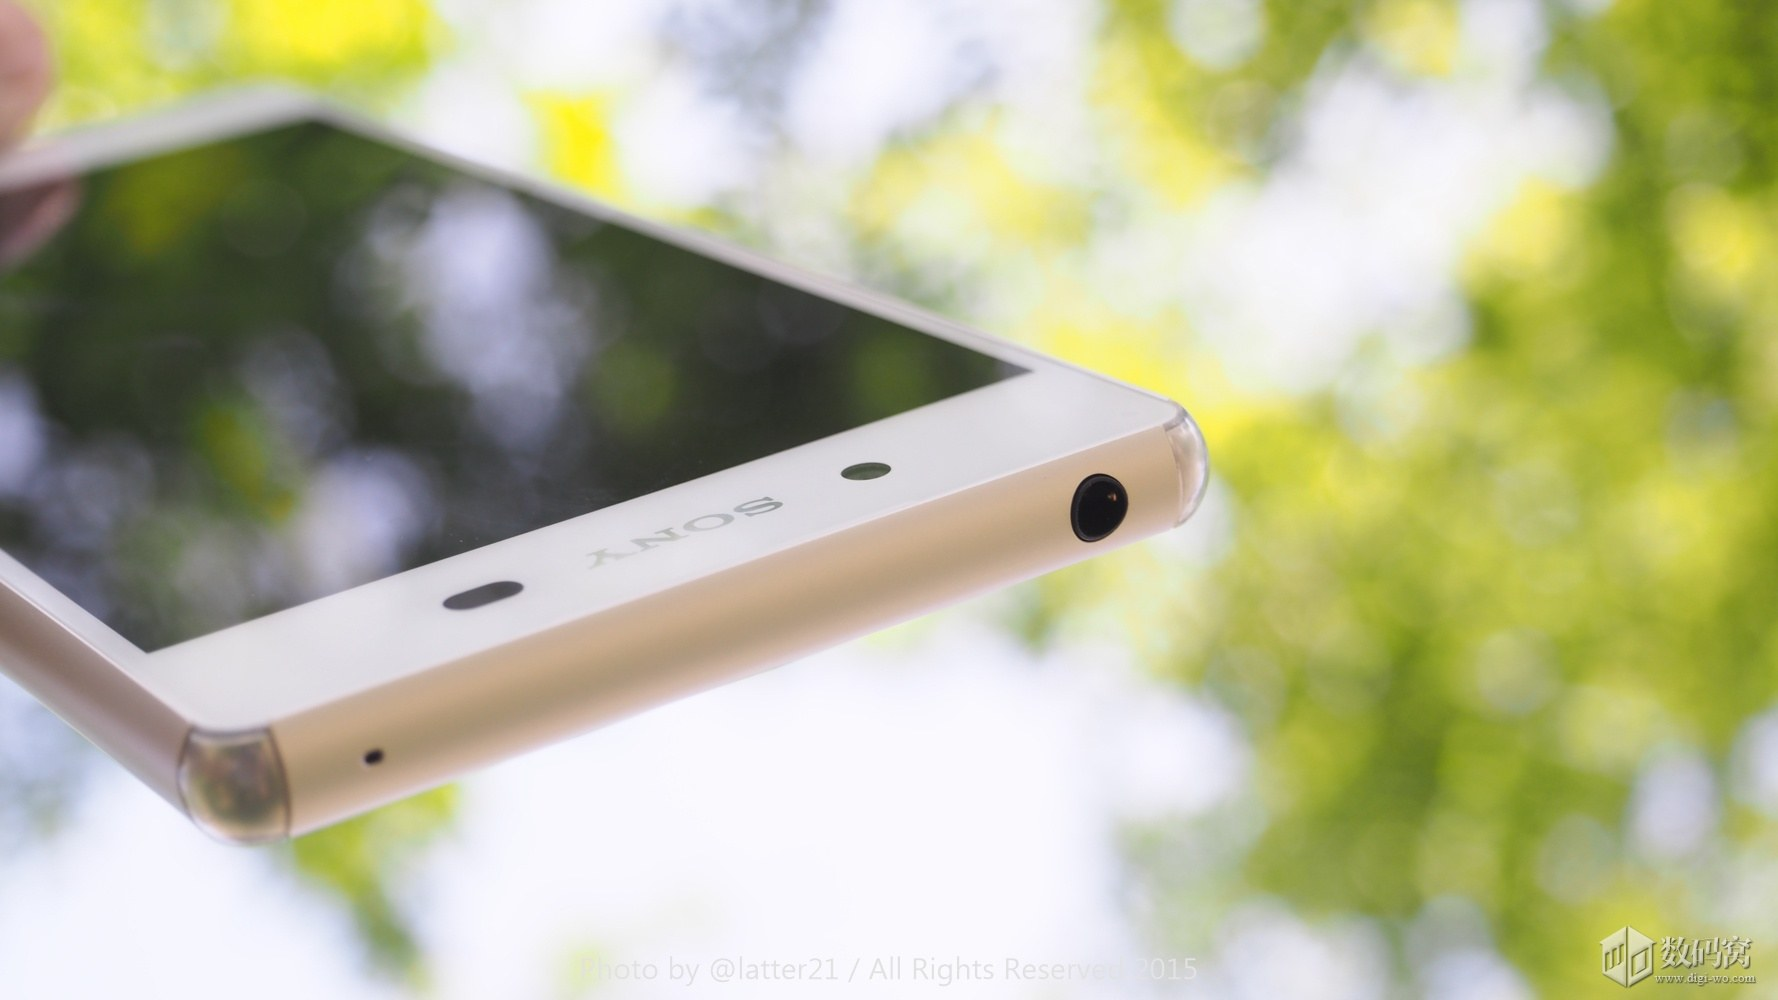 White Xperia Z3+ 3.5 mm headphone jack